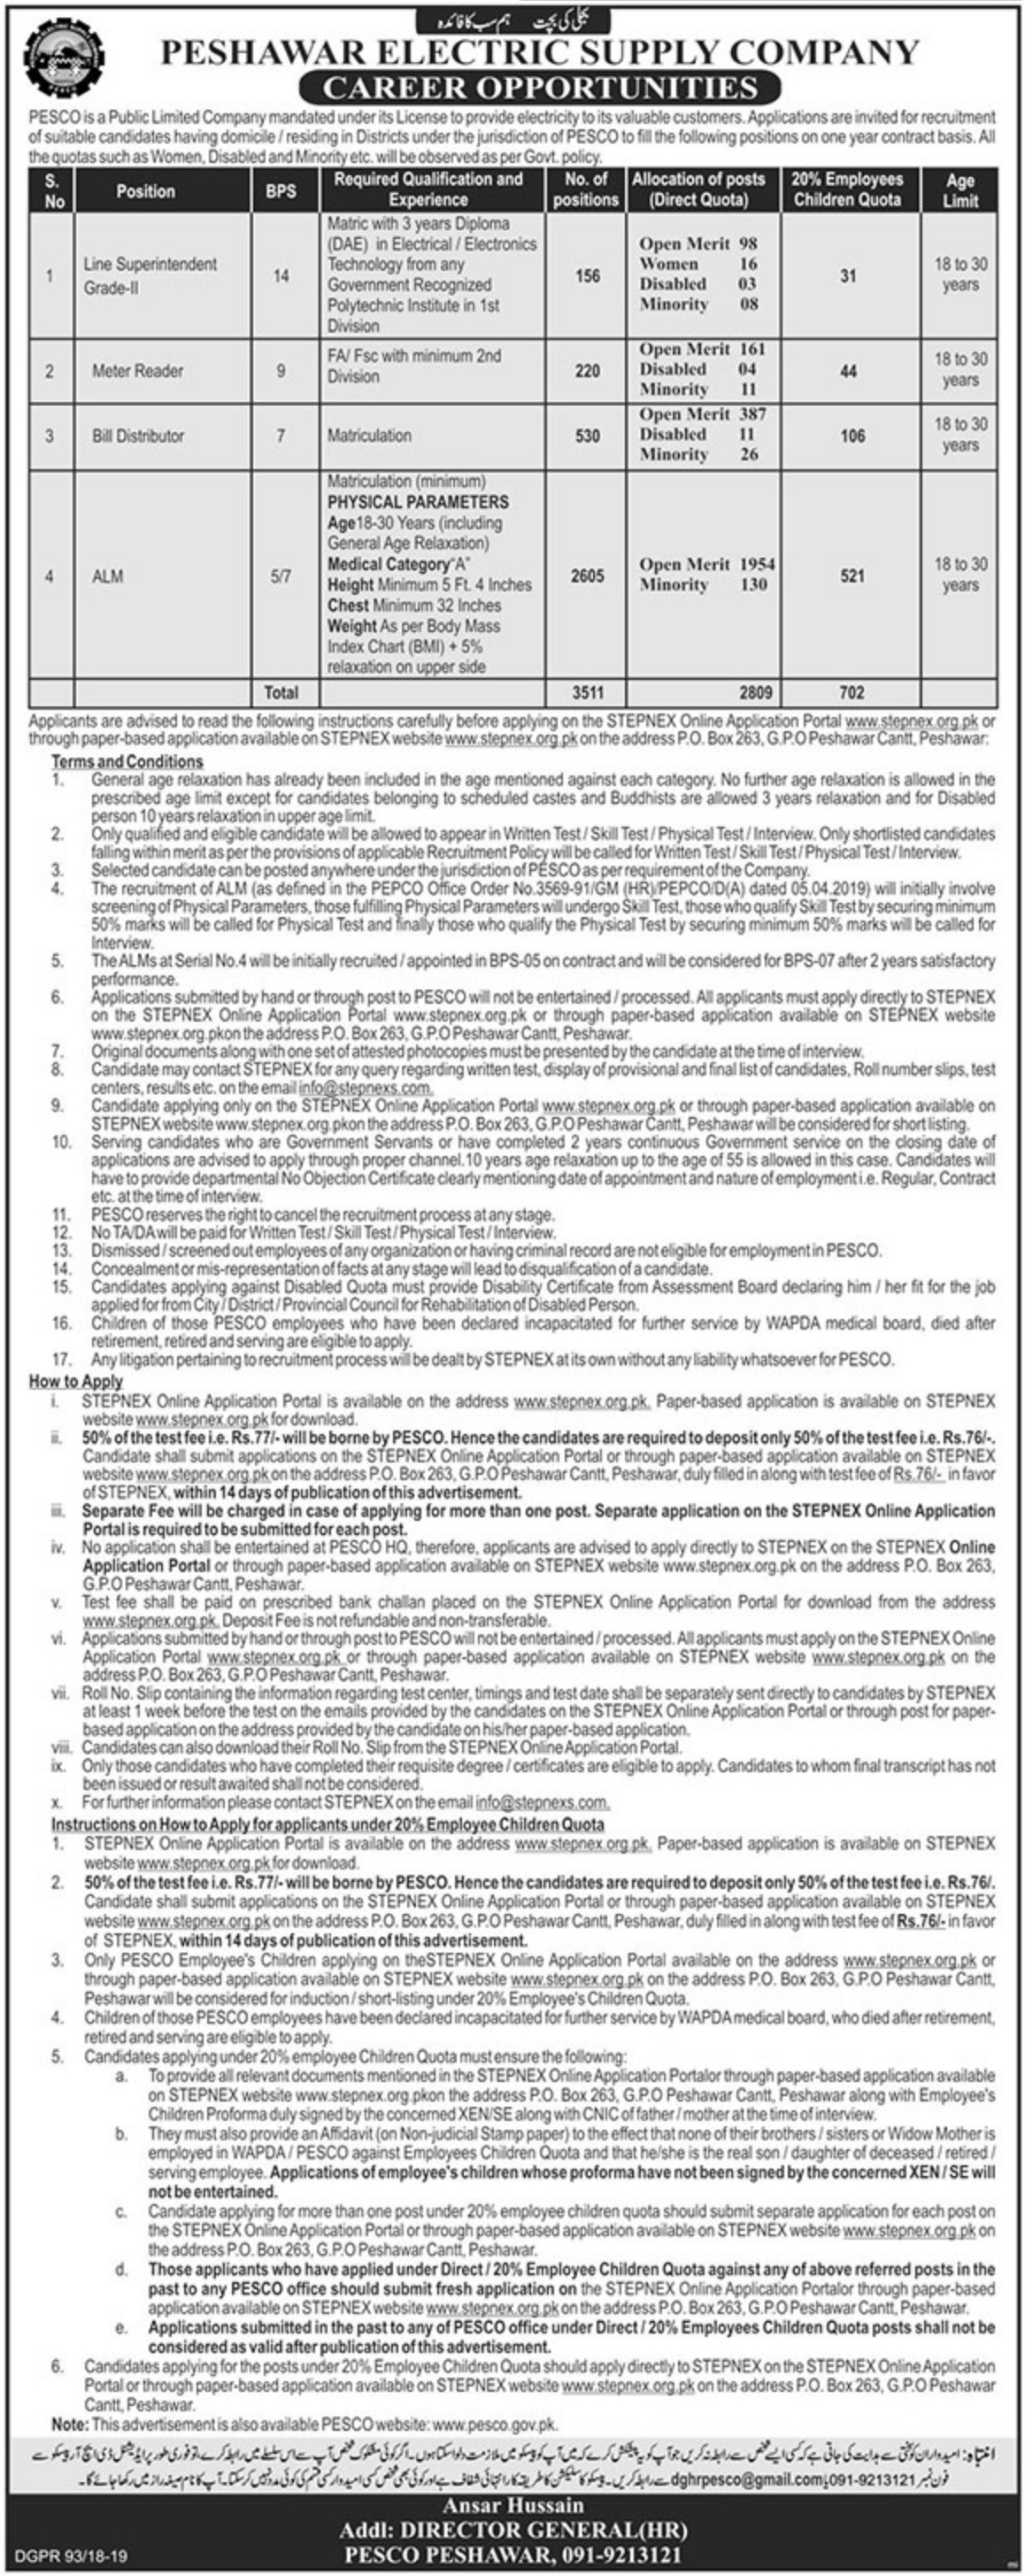 Latest Jobs in Peshawar Electric Supply Company PESCO 2019 STEPNEX